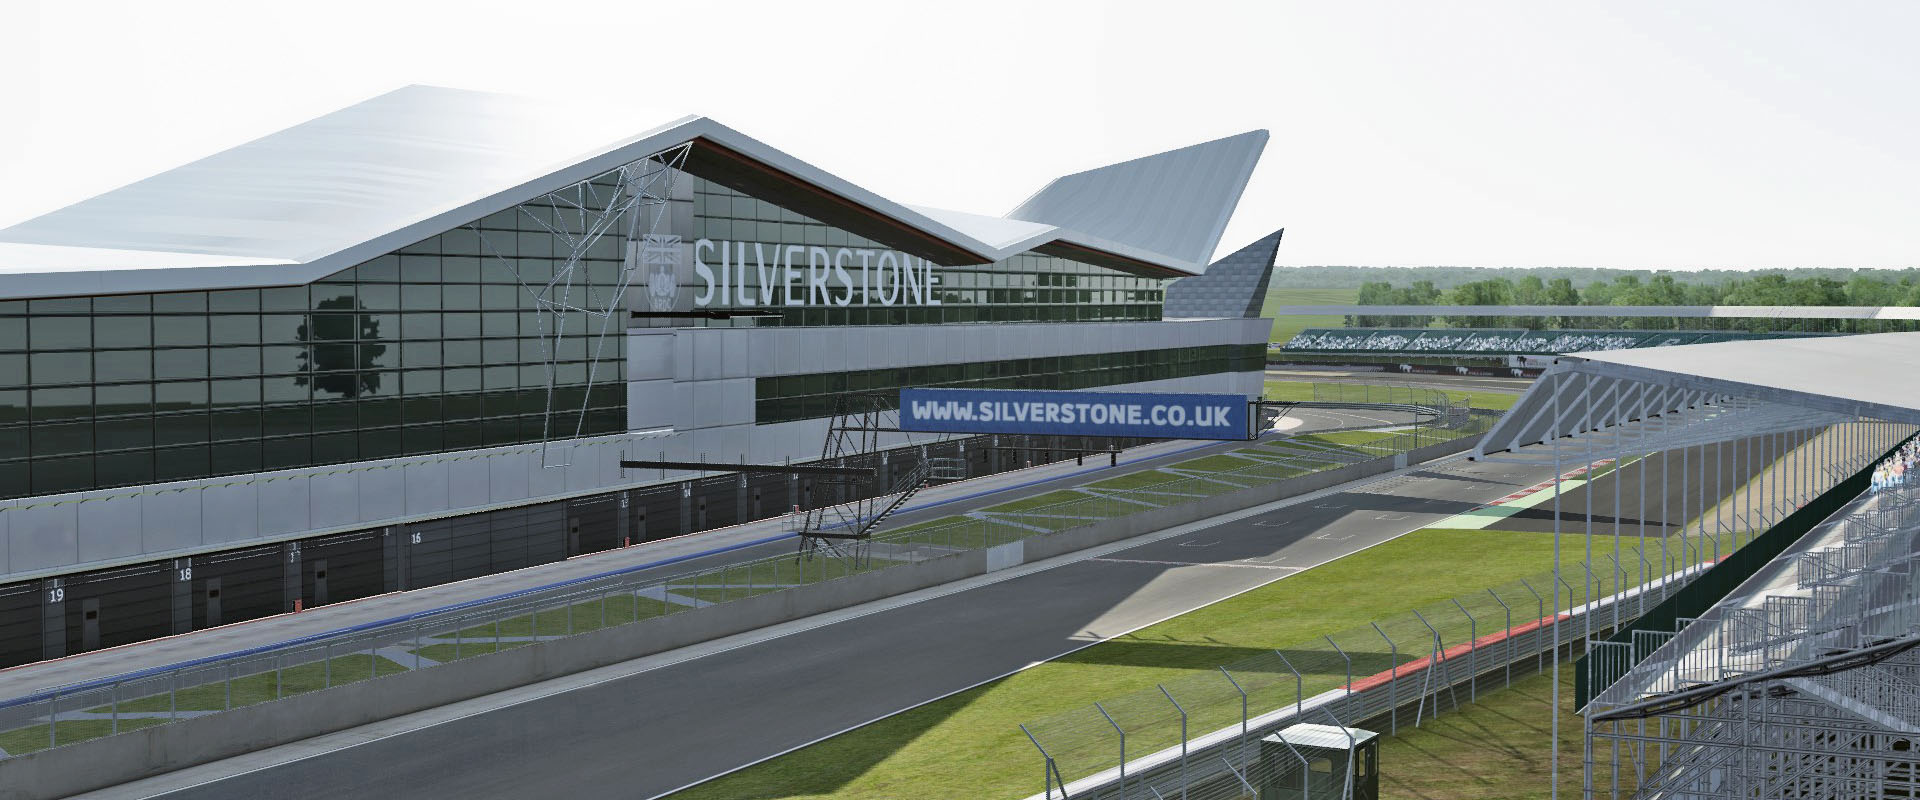 09-Silverstone-Preview-2